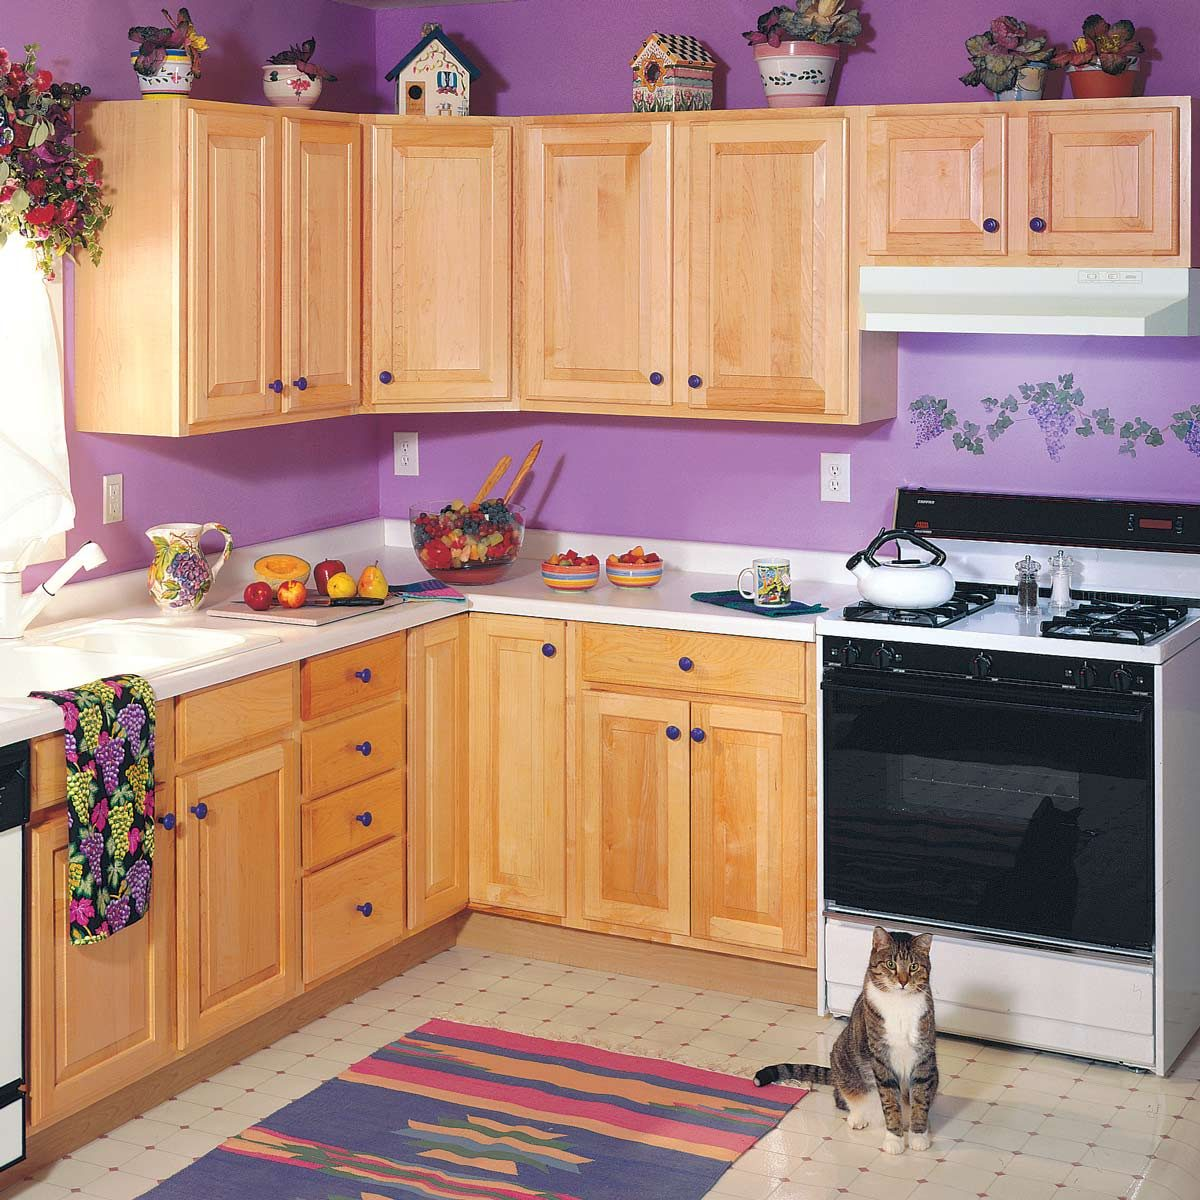 outdated purple kitchen